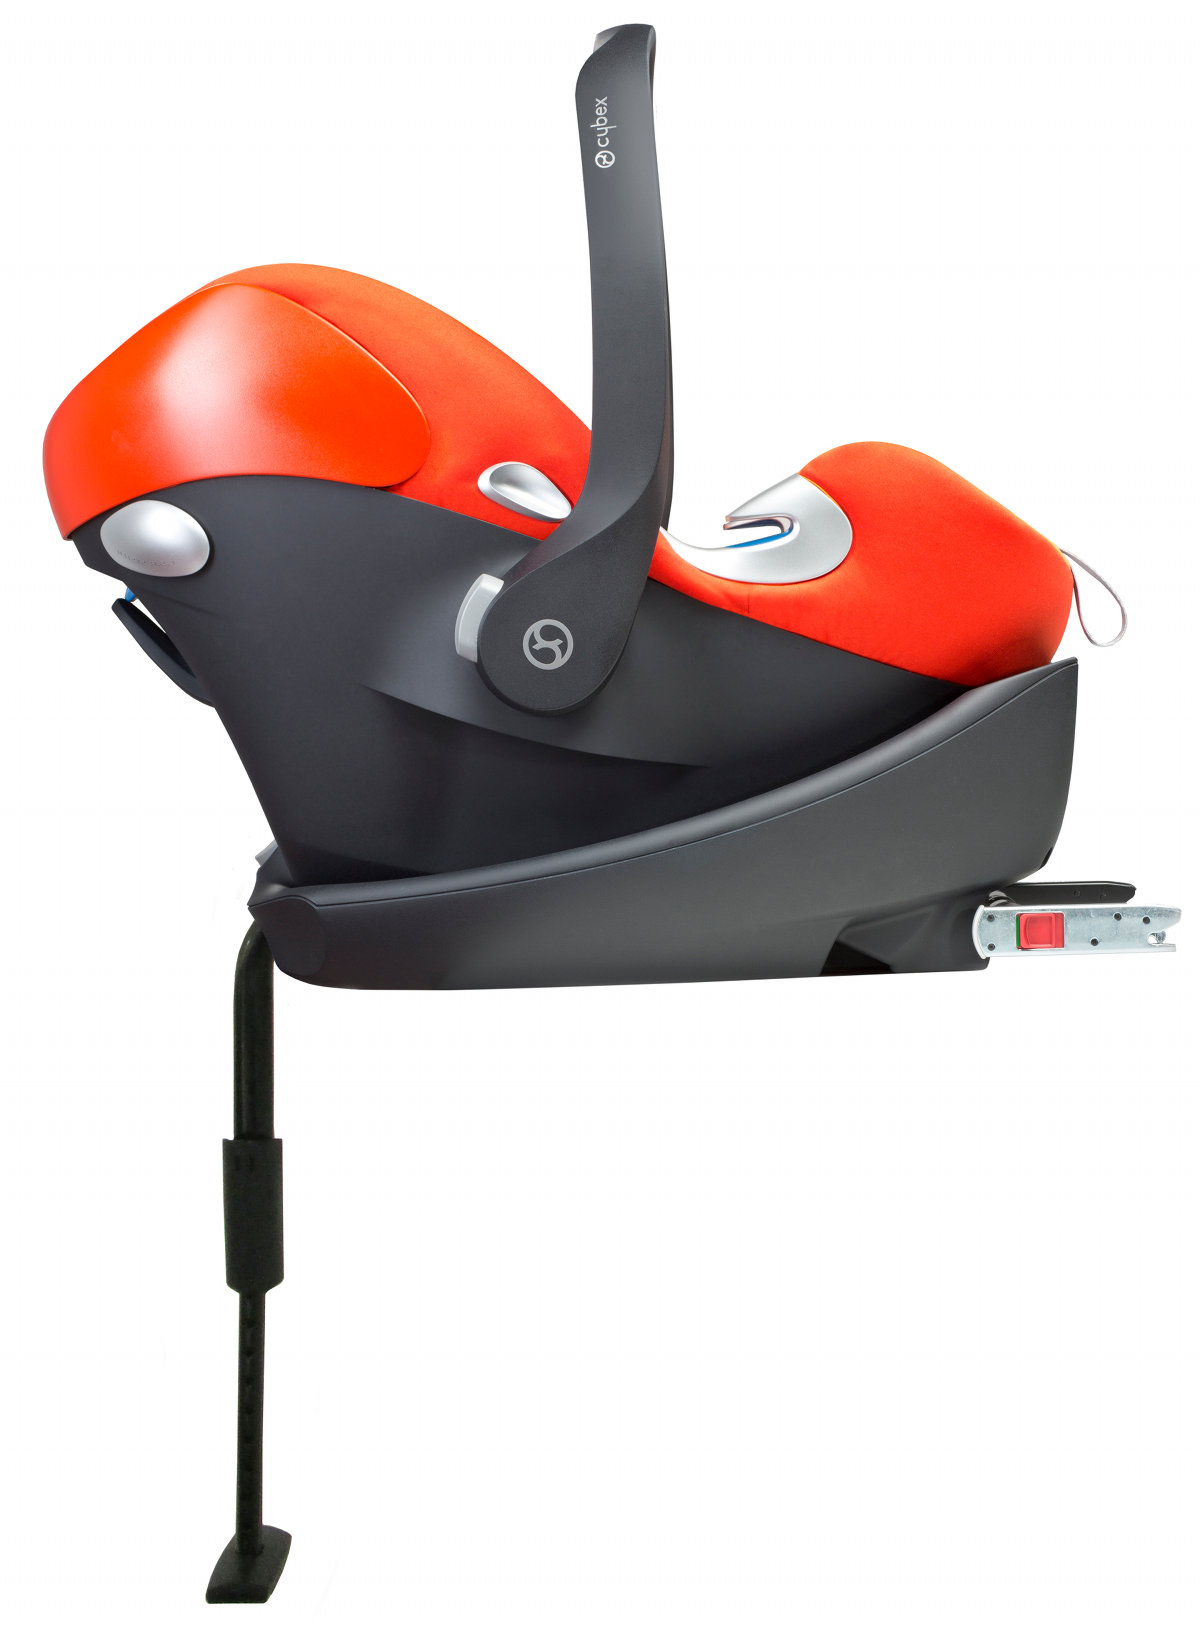 Baza isofix do fotelika Aton - Cybex Aton Base 2 Fix